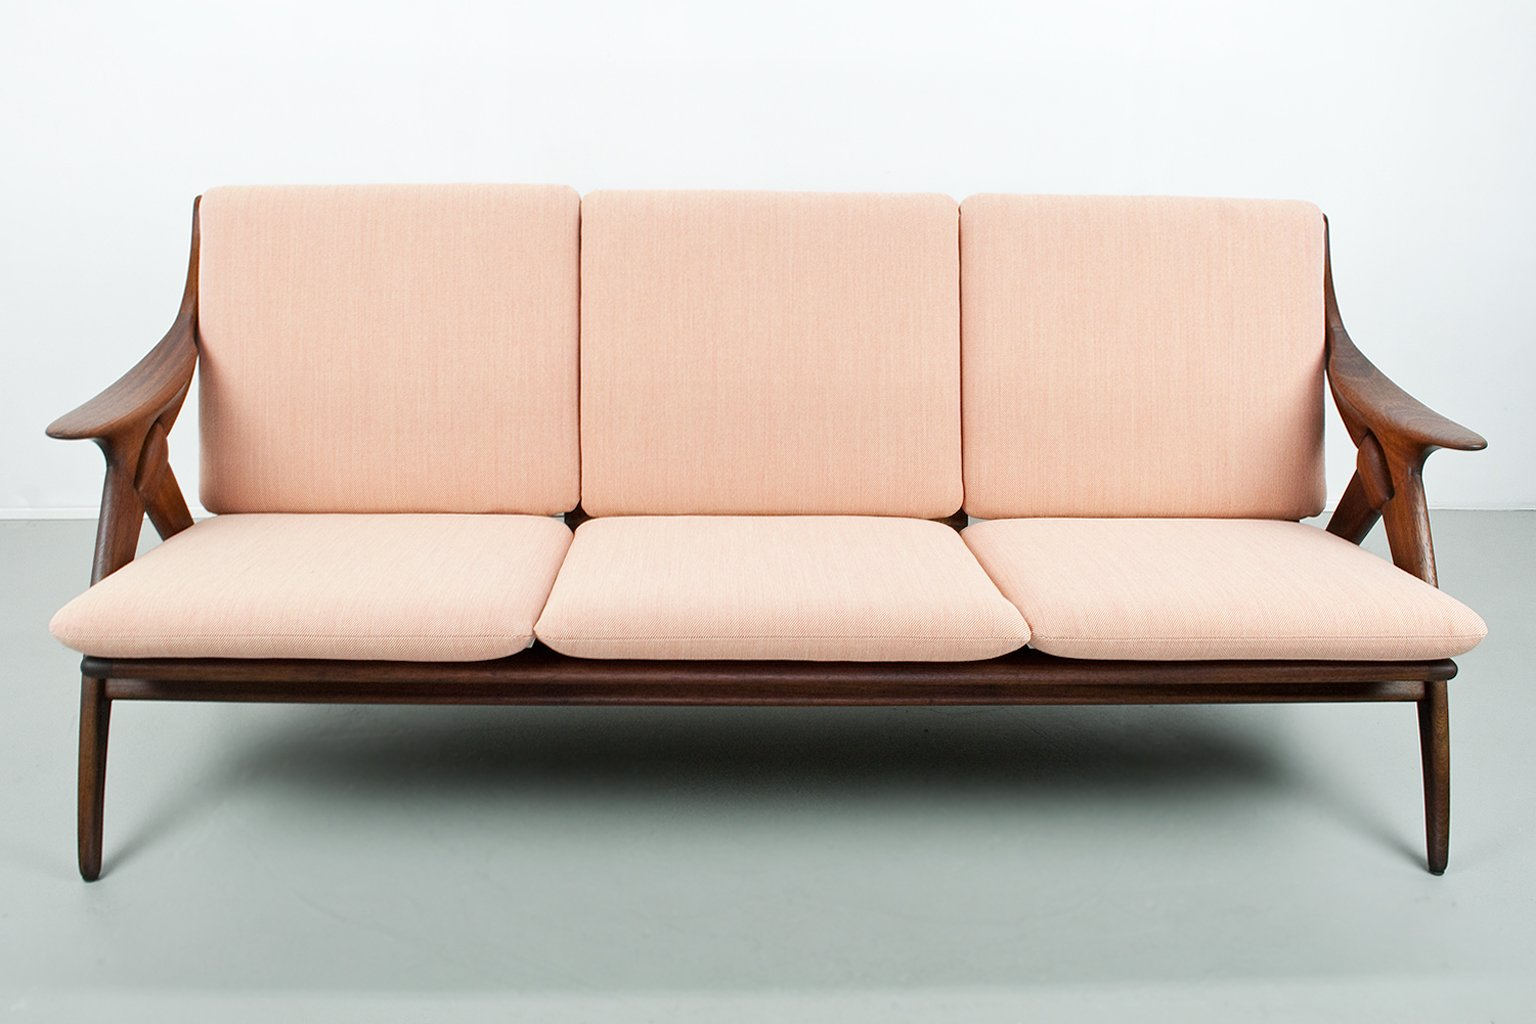 Gentil Dutch Mid Century Sofa In Teak From De Ster Gelderland, 1960s